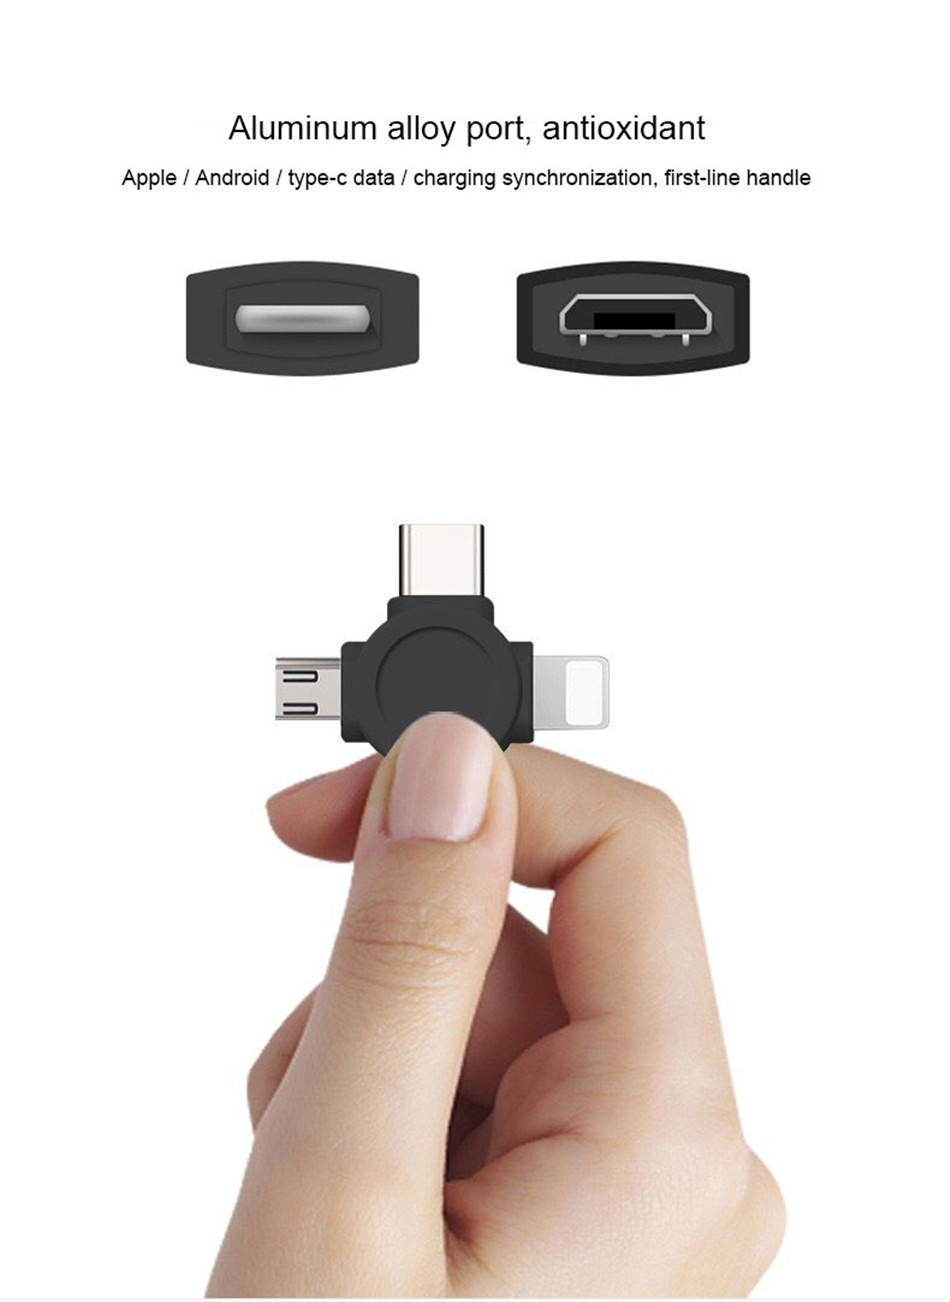 NOHON 3 in 1 USB Cable Type C Lighting Charge Cable For iPhone X 7 8 Plus IOS For Xiaomi Huawei Samsung Fast Charging Cables 1M (6)